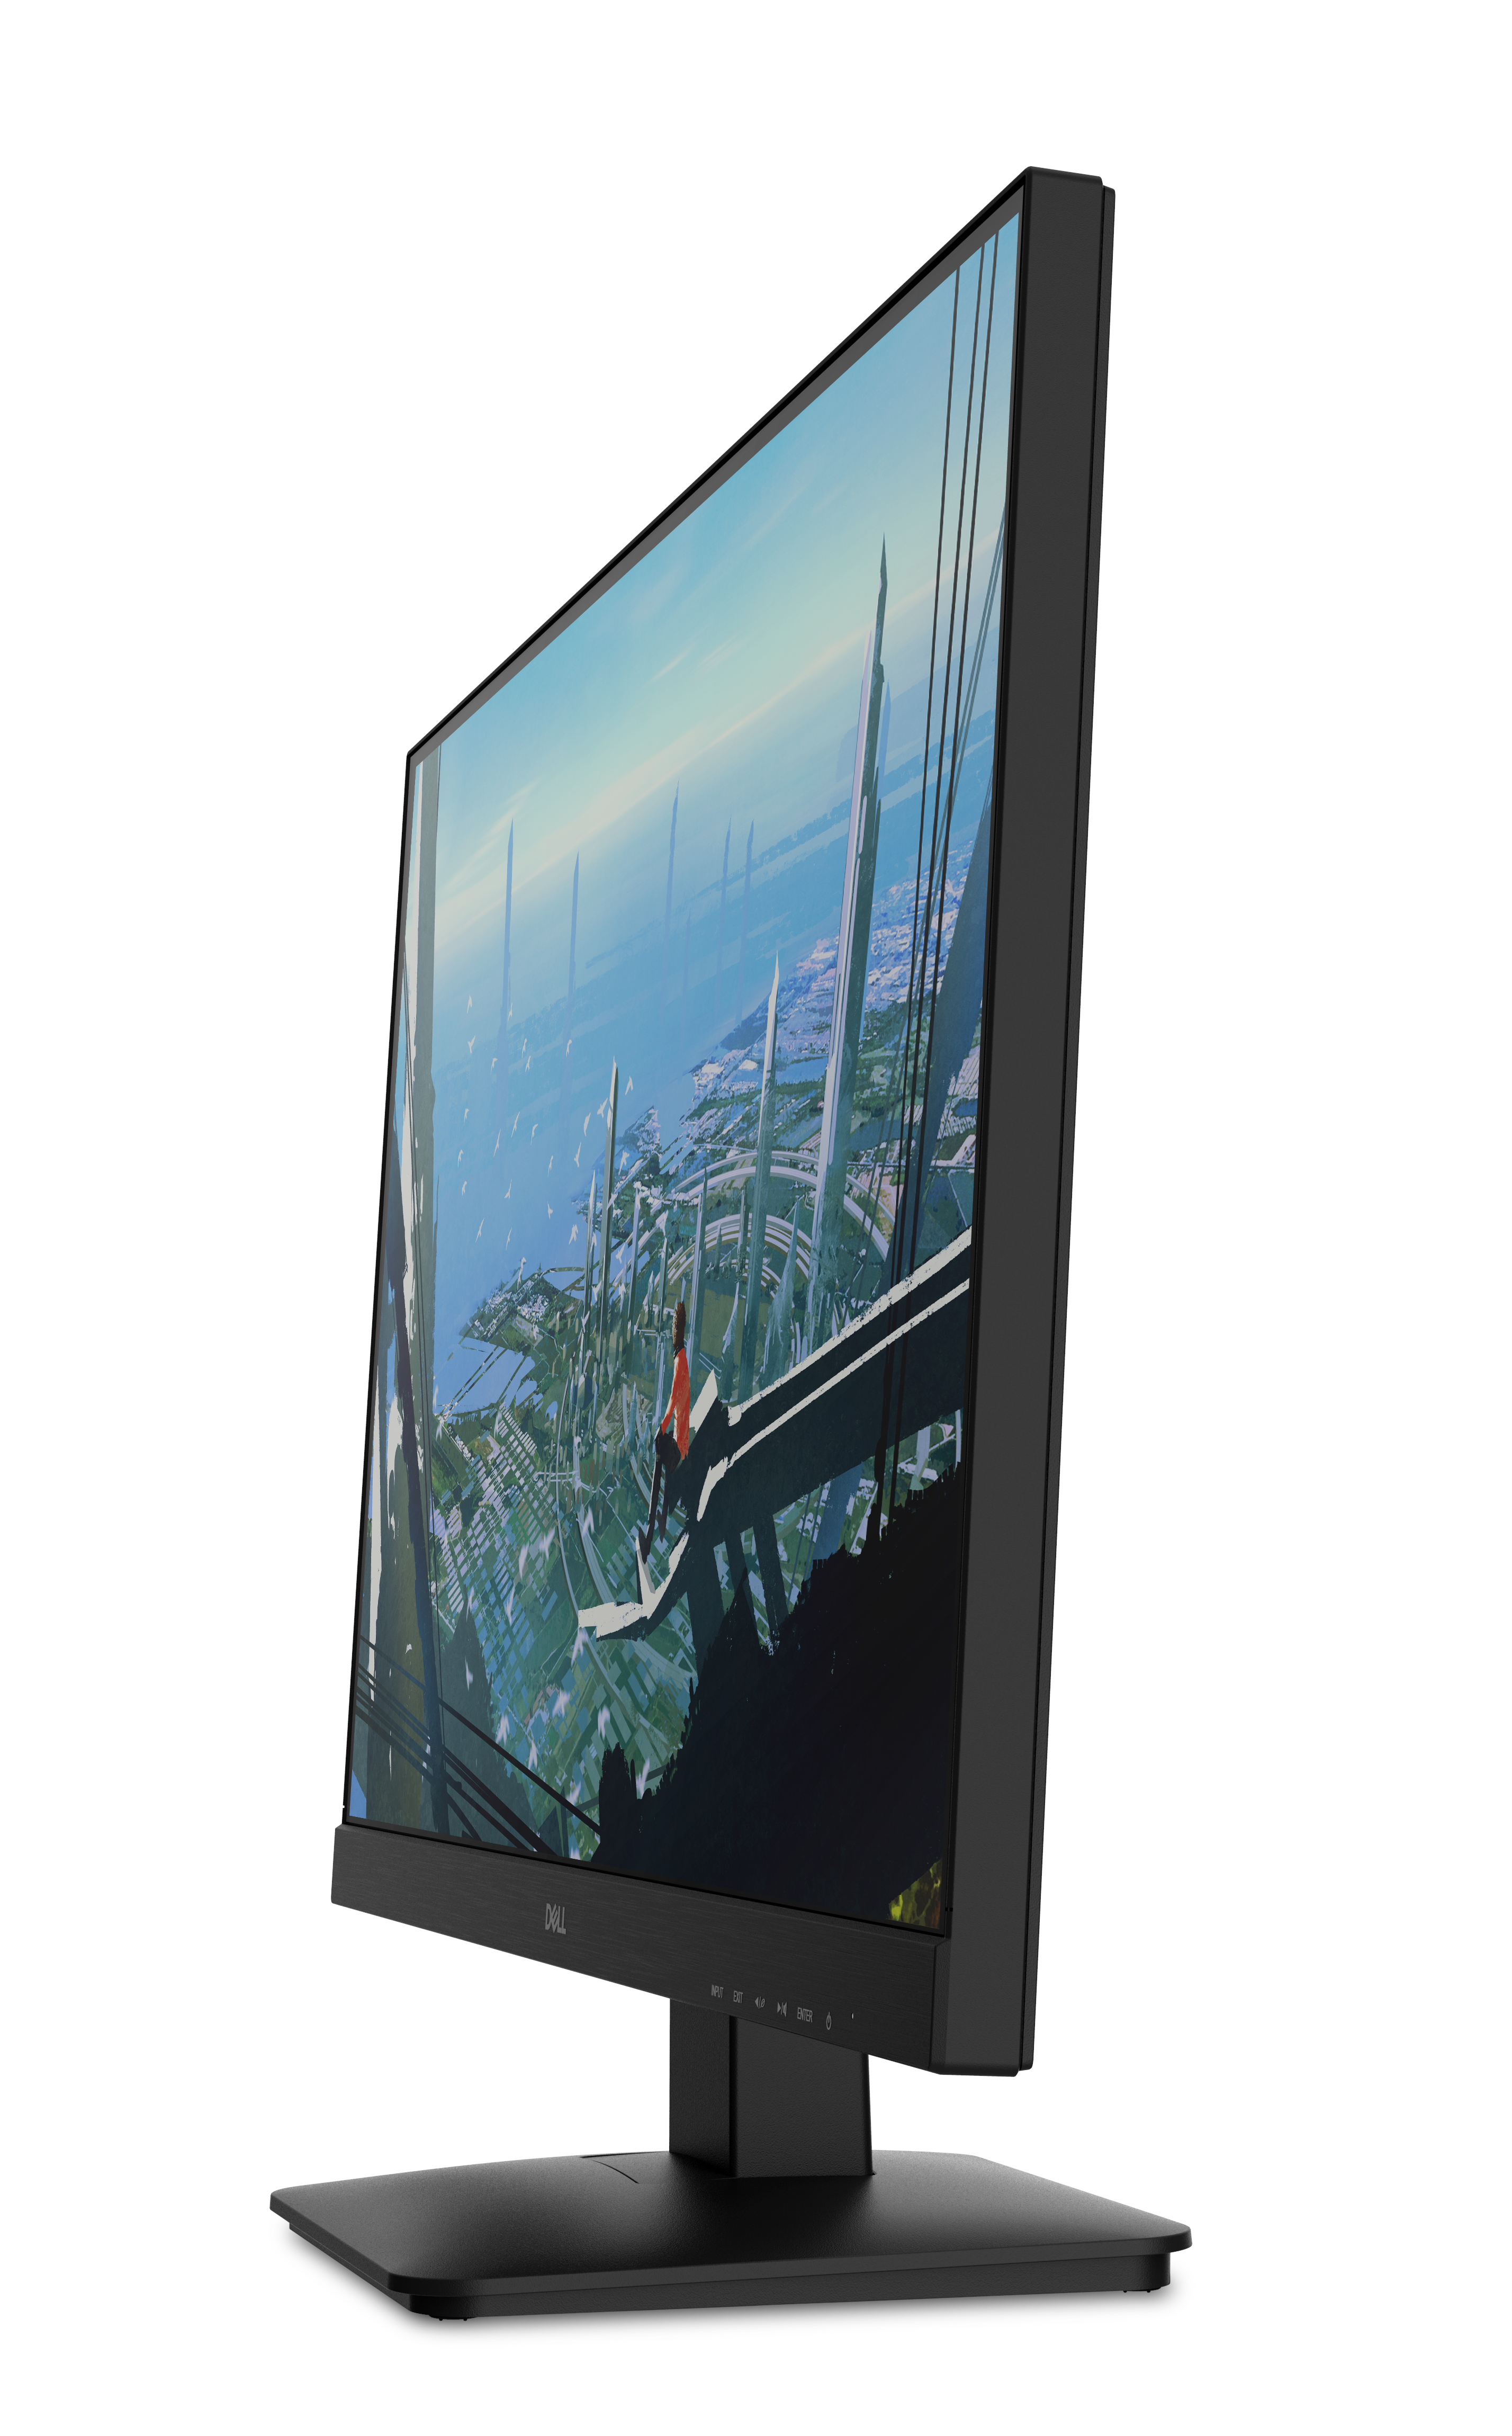 Dell Gaming LED-Lit Monitor 27 inch Black D2719HGF FHD 1920x1080 Wide Screen HDM